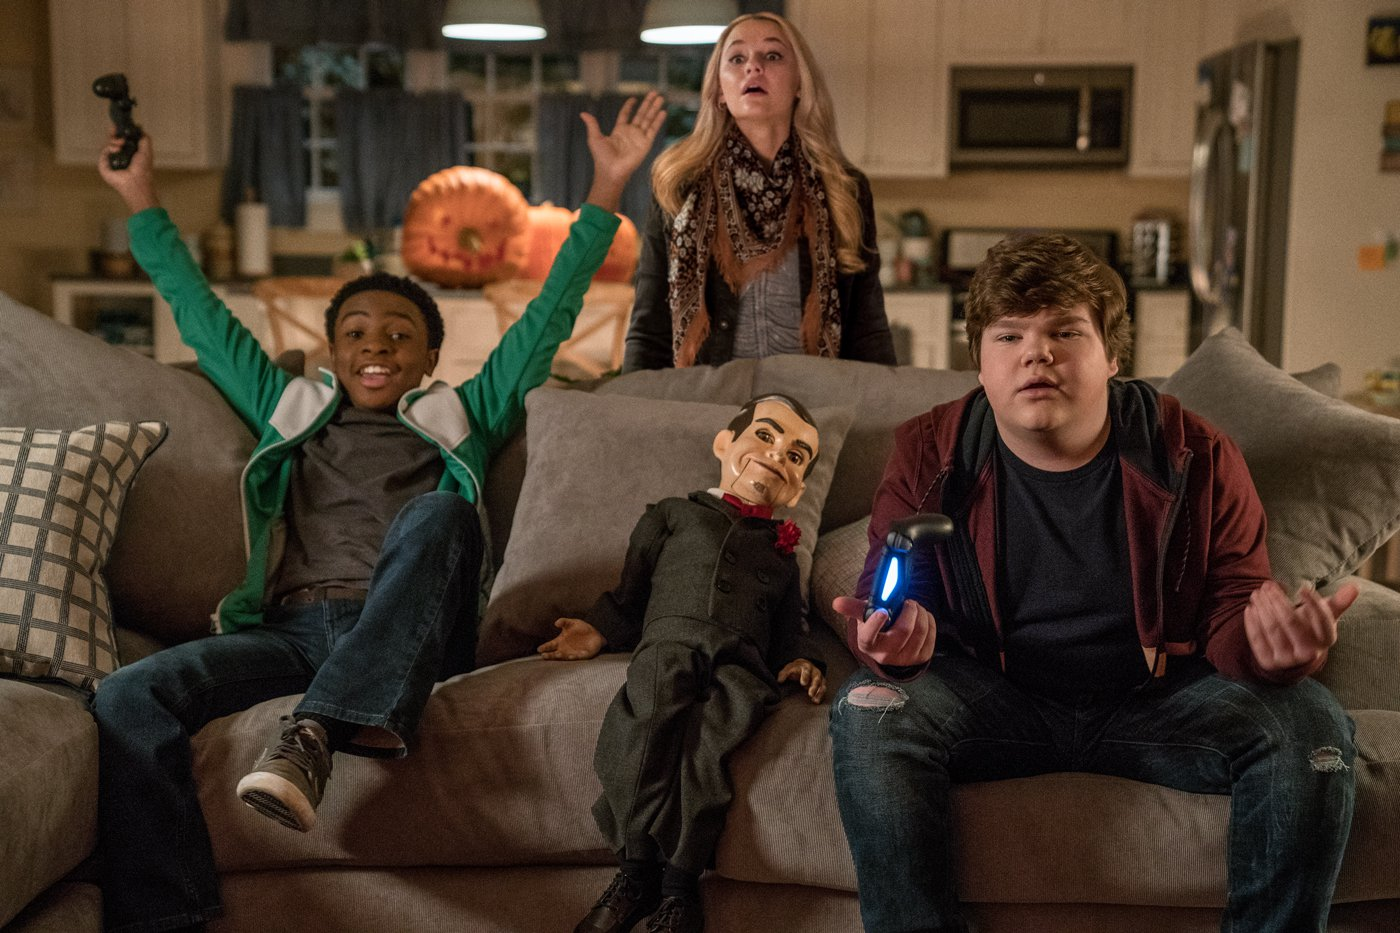 Goosebumps 2 Haunted Halloween Review Family Friendly Sequel Indiewire